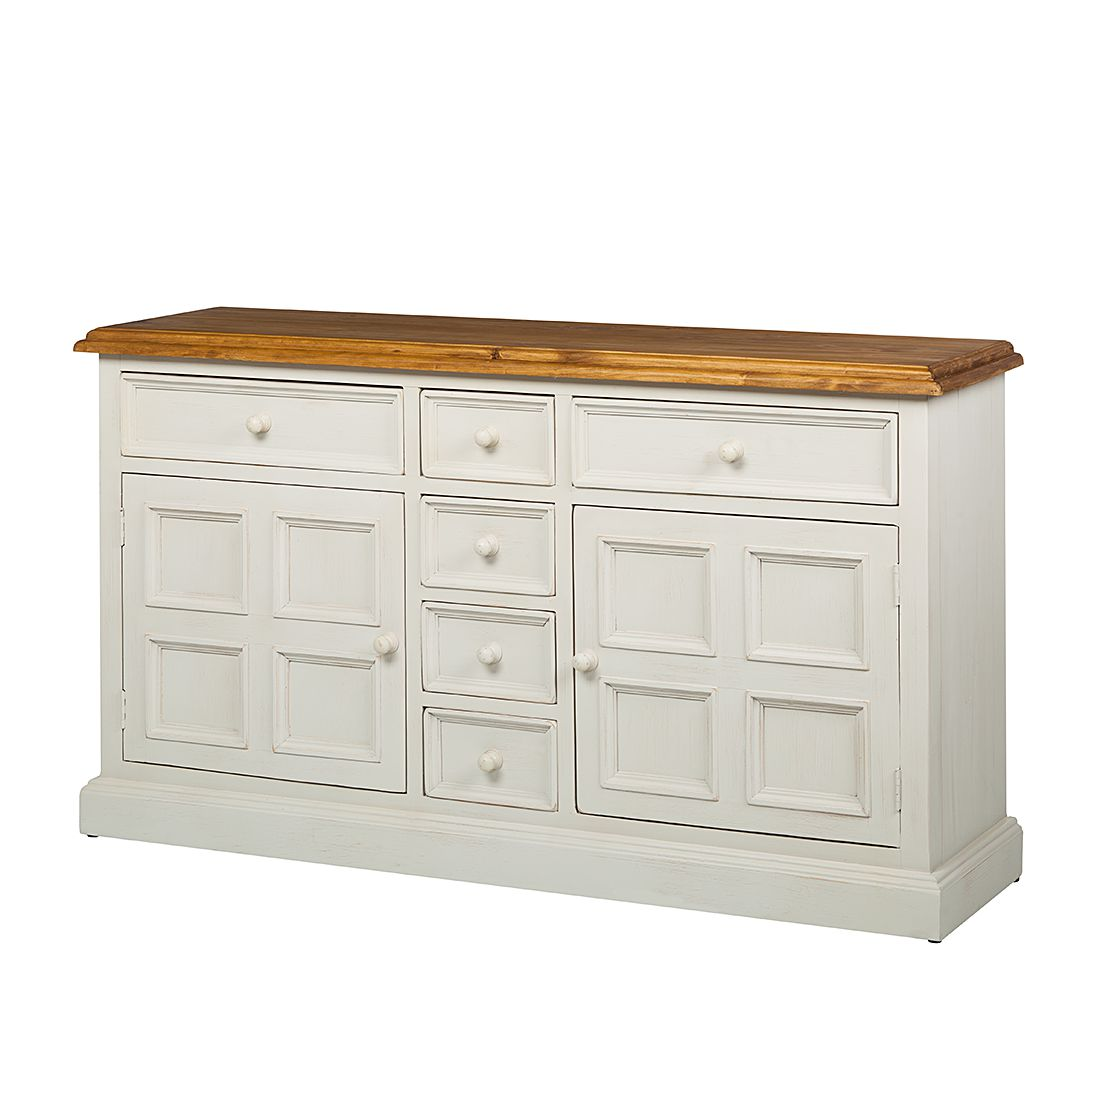 Dressoir Boddo, Ridgevalley